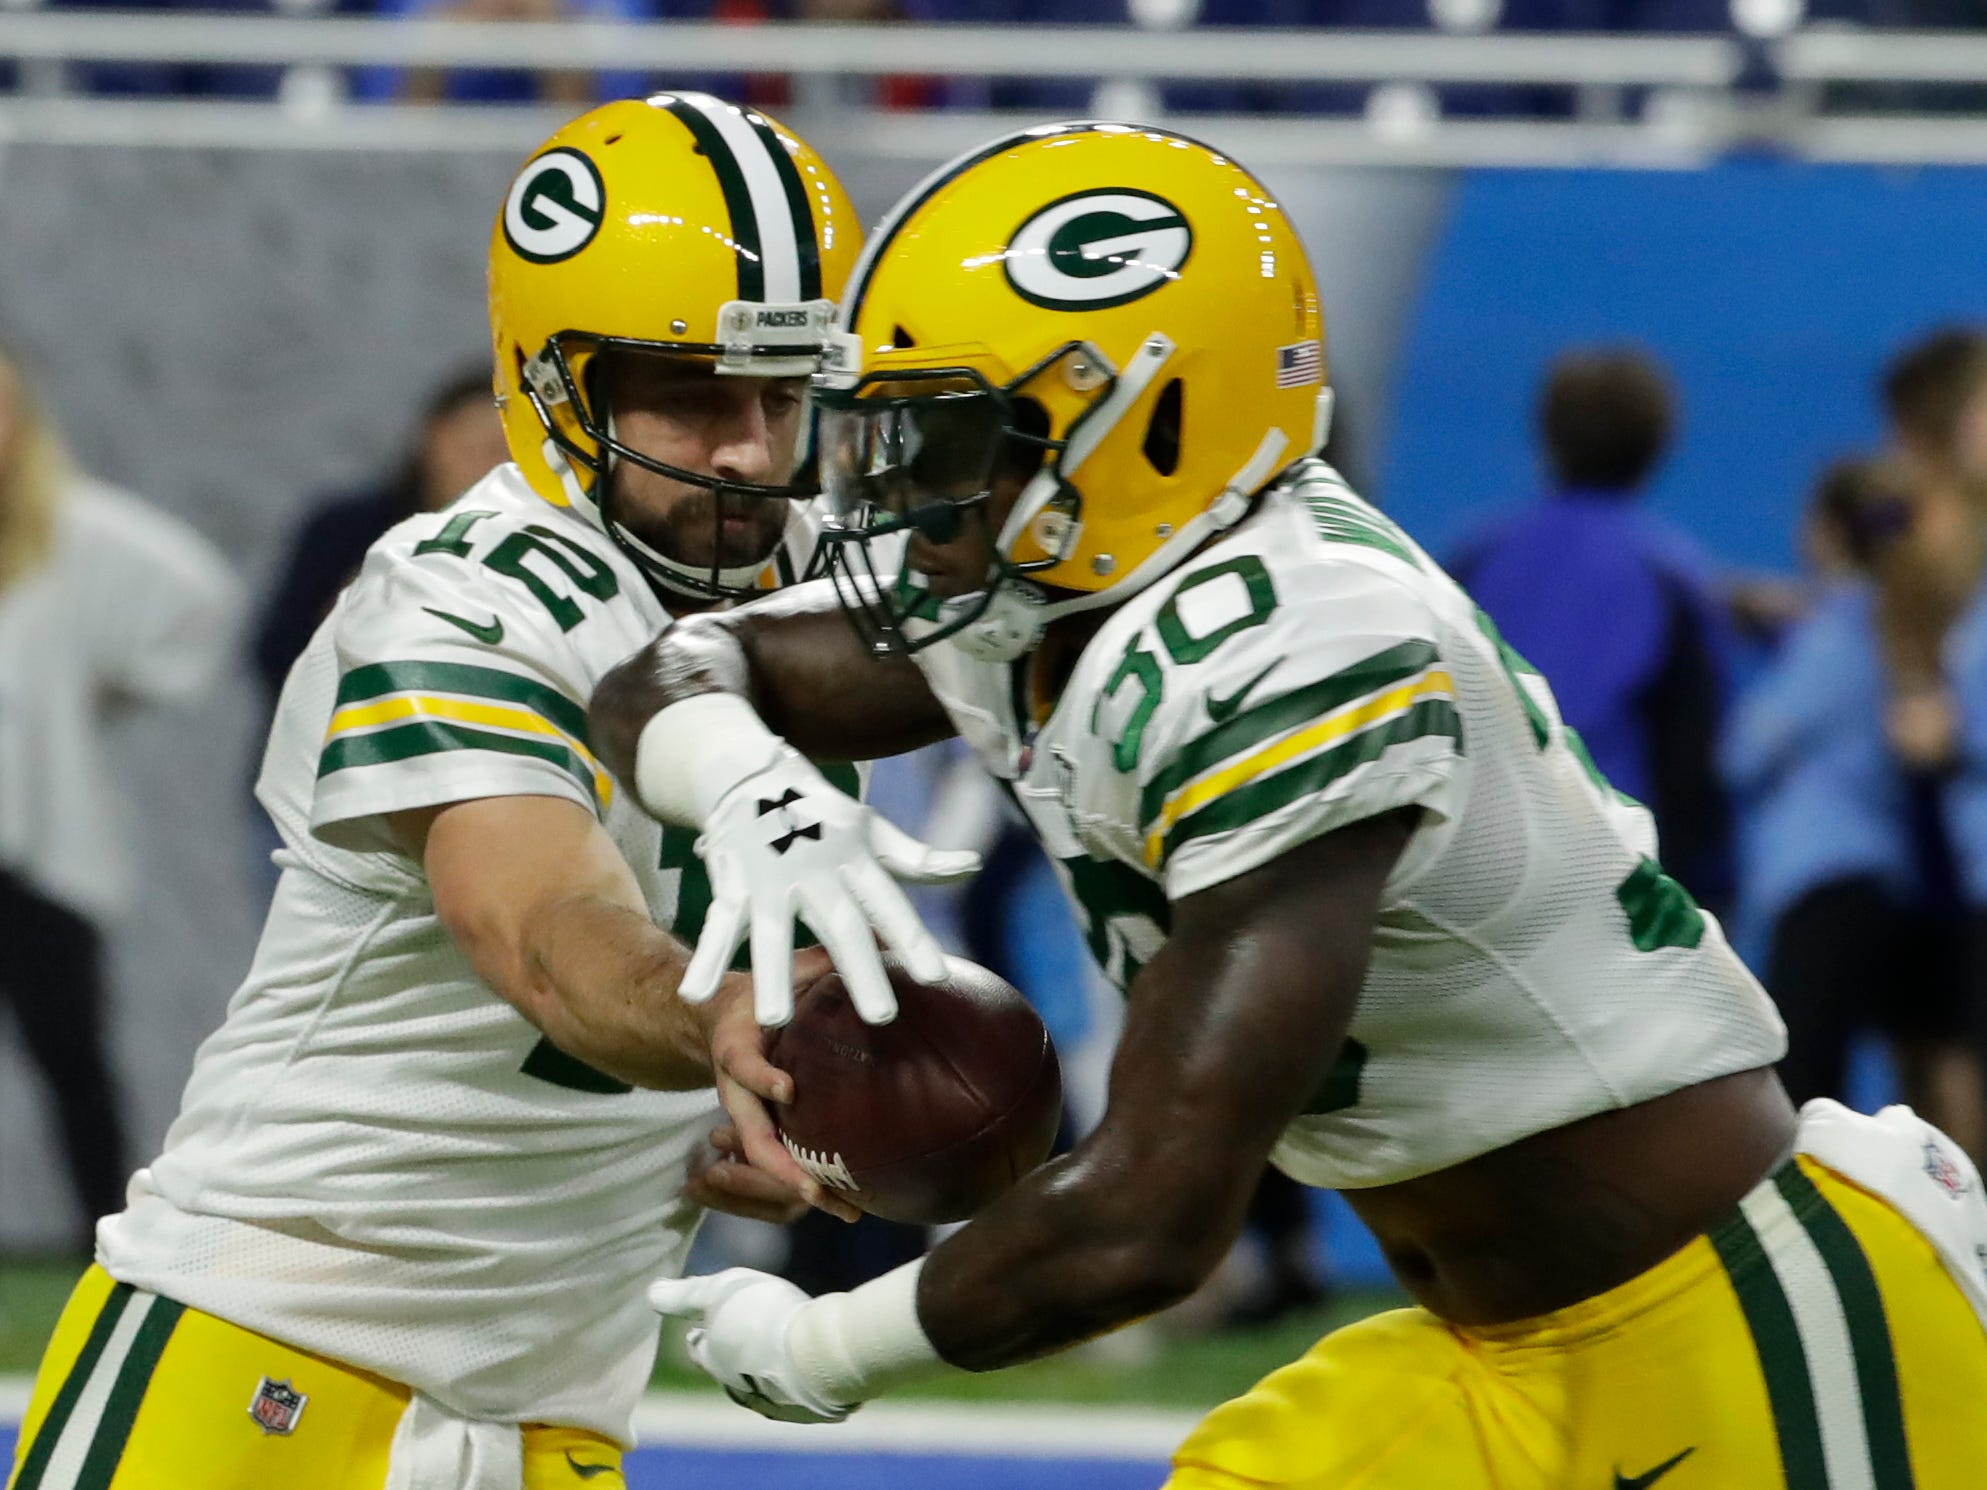 Green Bay Packers quarterback Aaron Rodgers (12) hands off to Green Bay Packers running back Jamaal Williams (30) while warming up before the Green Bay Packers vs. Detroit Lions NFL game at Ford Field, Detroit, Sunday, October 7, 2018.